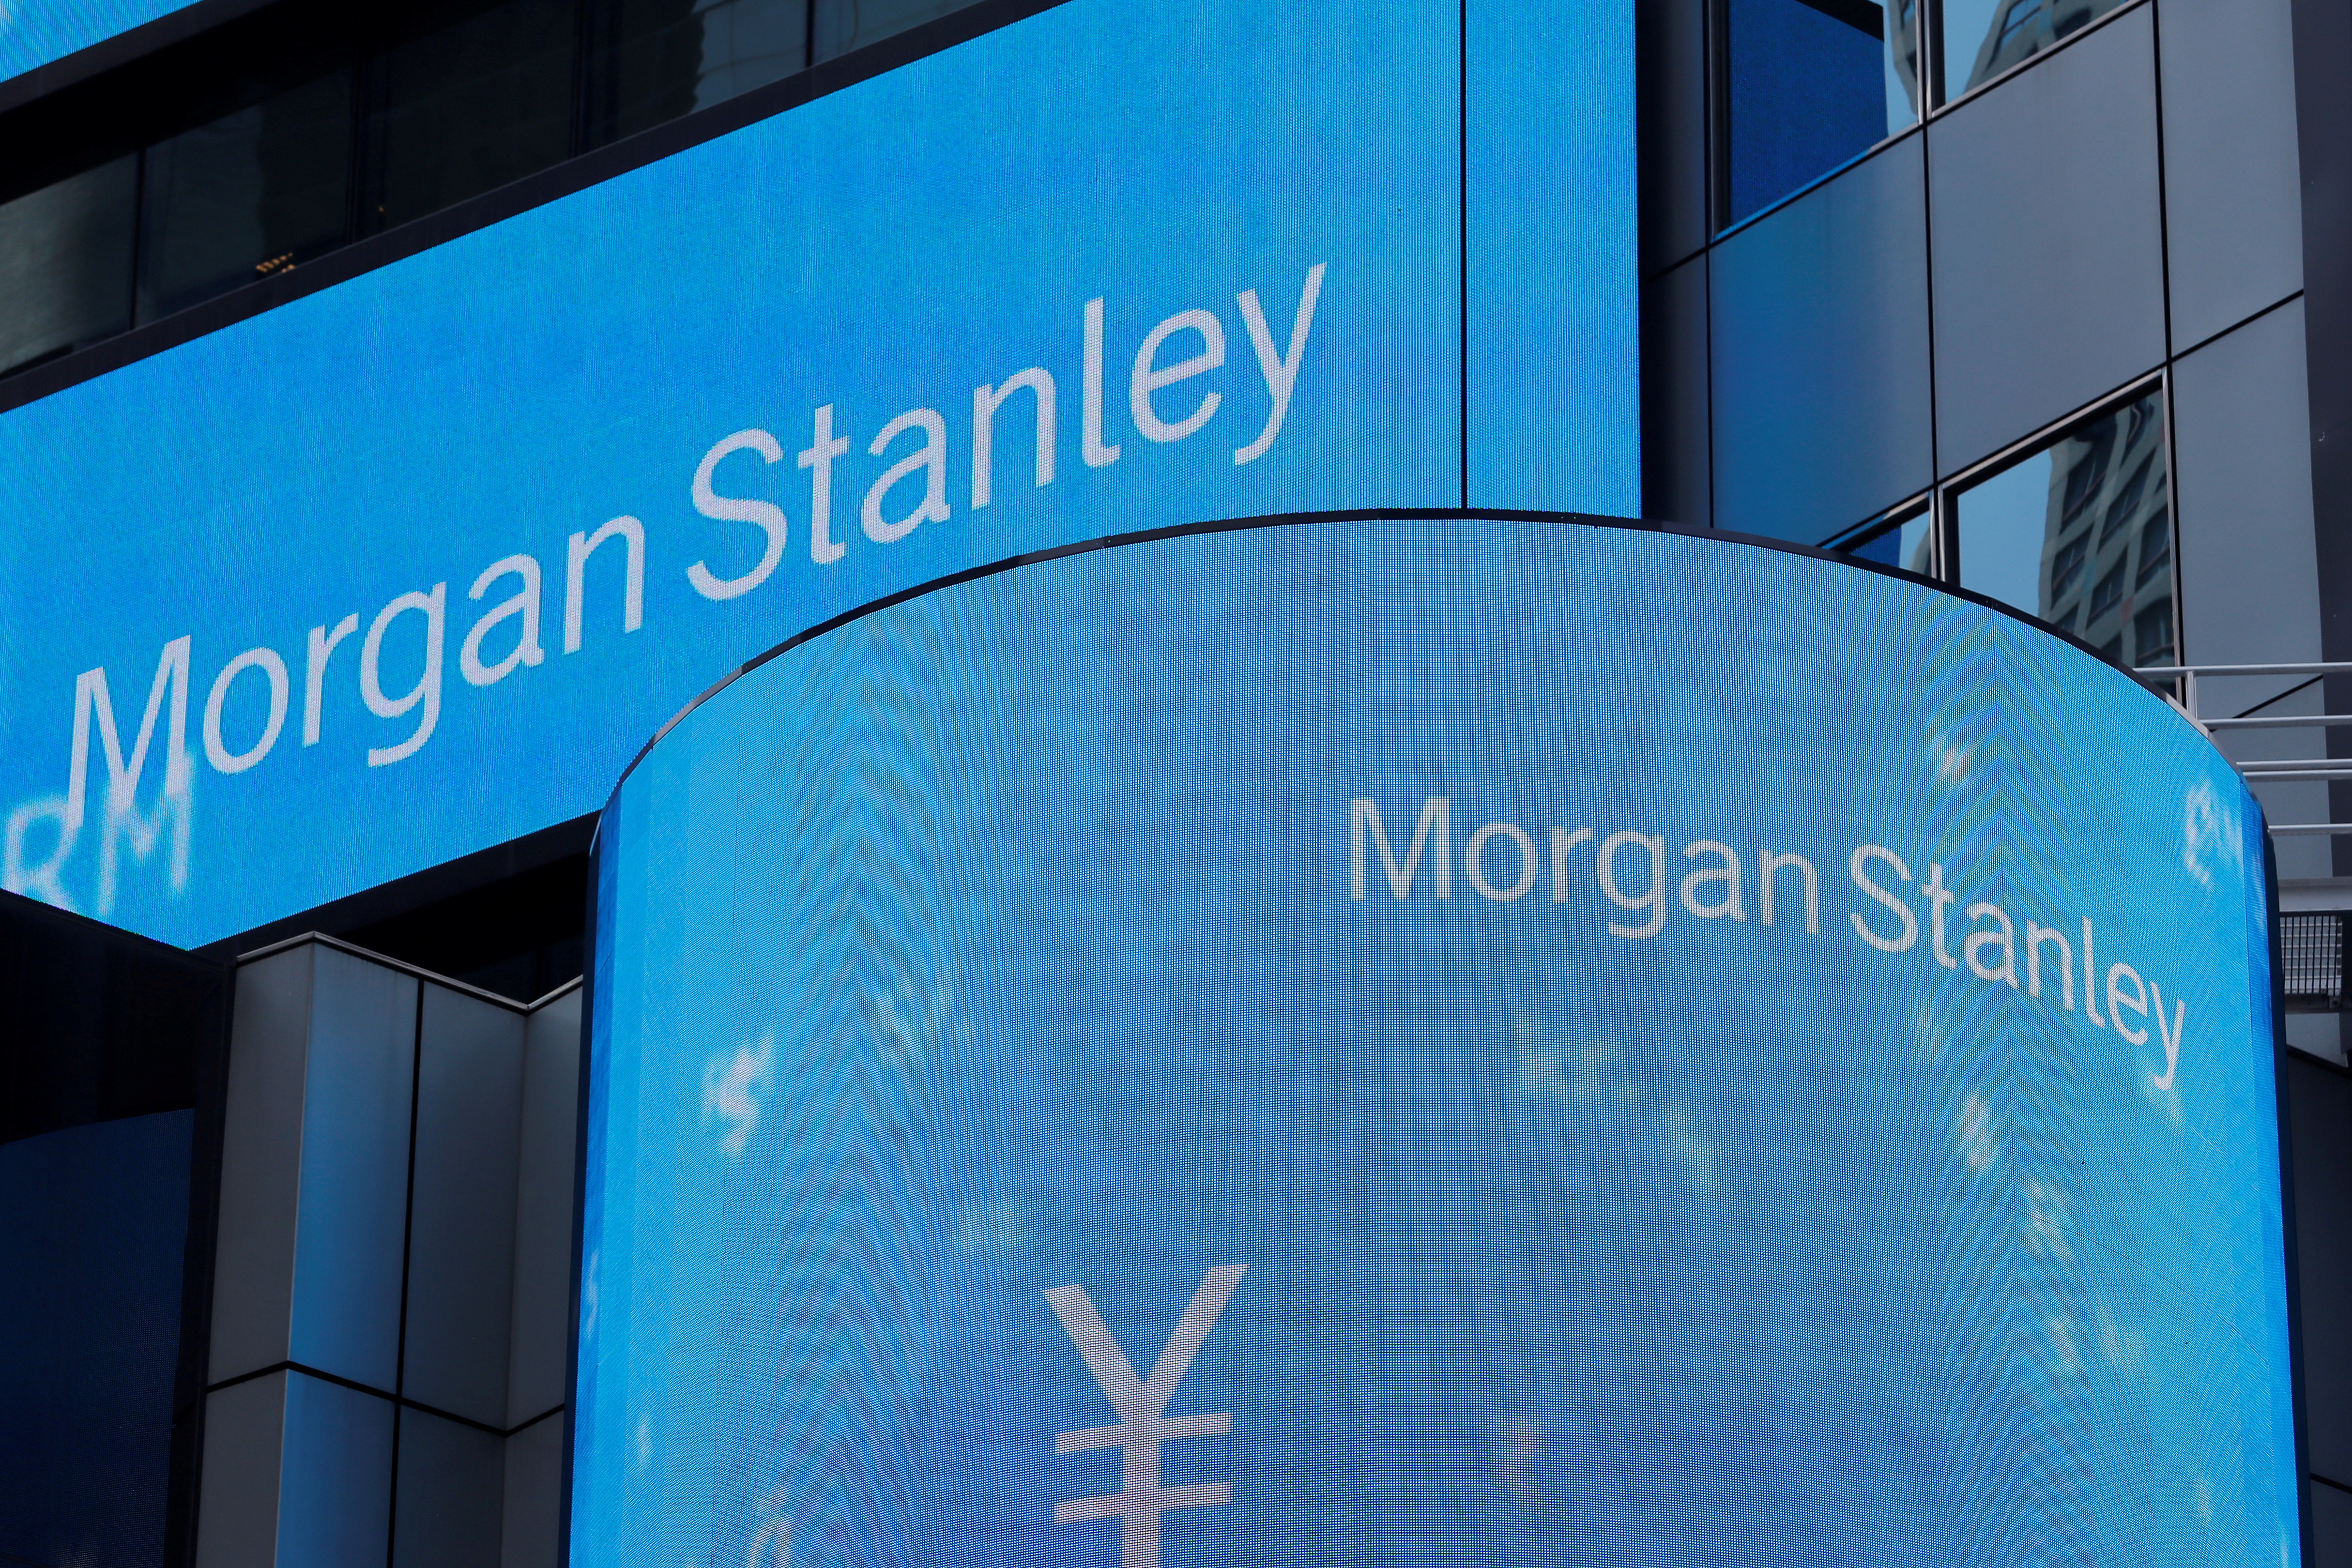 Morgan Stanley shareholders vote to approve executive pay, director